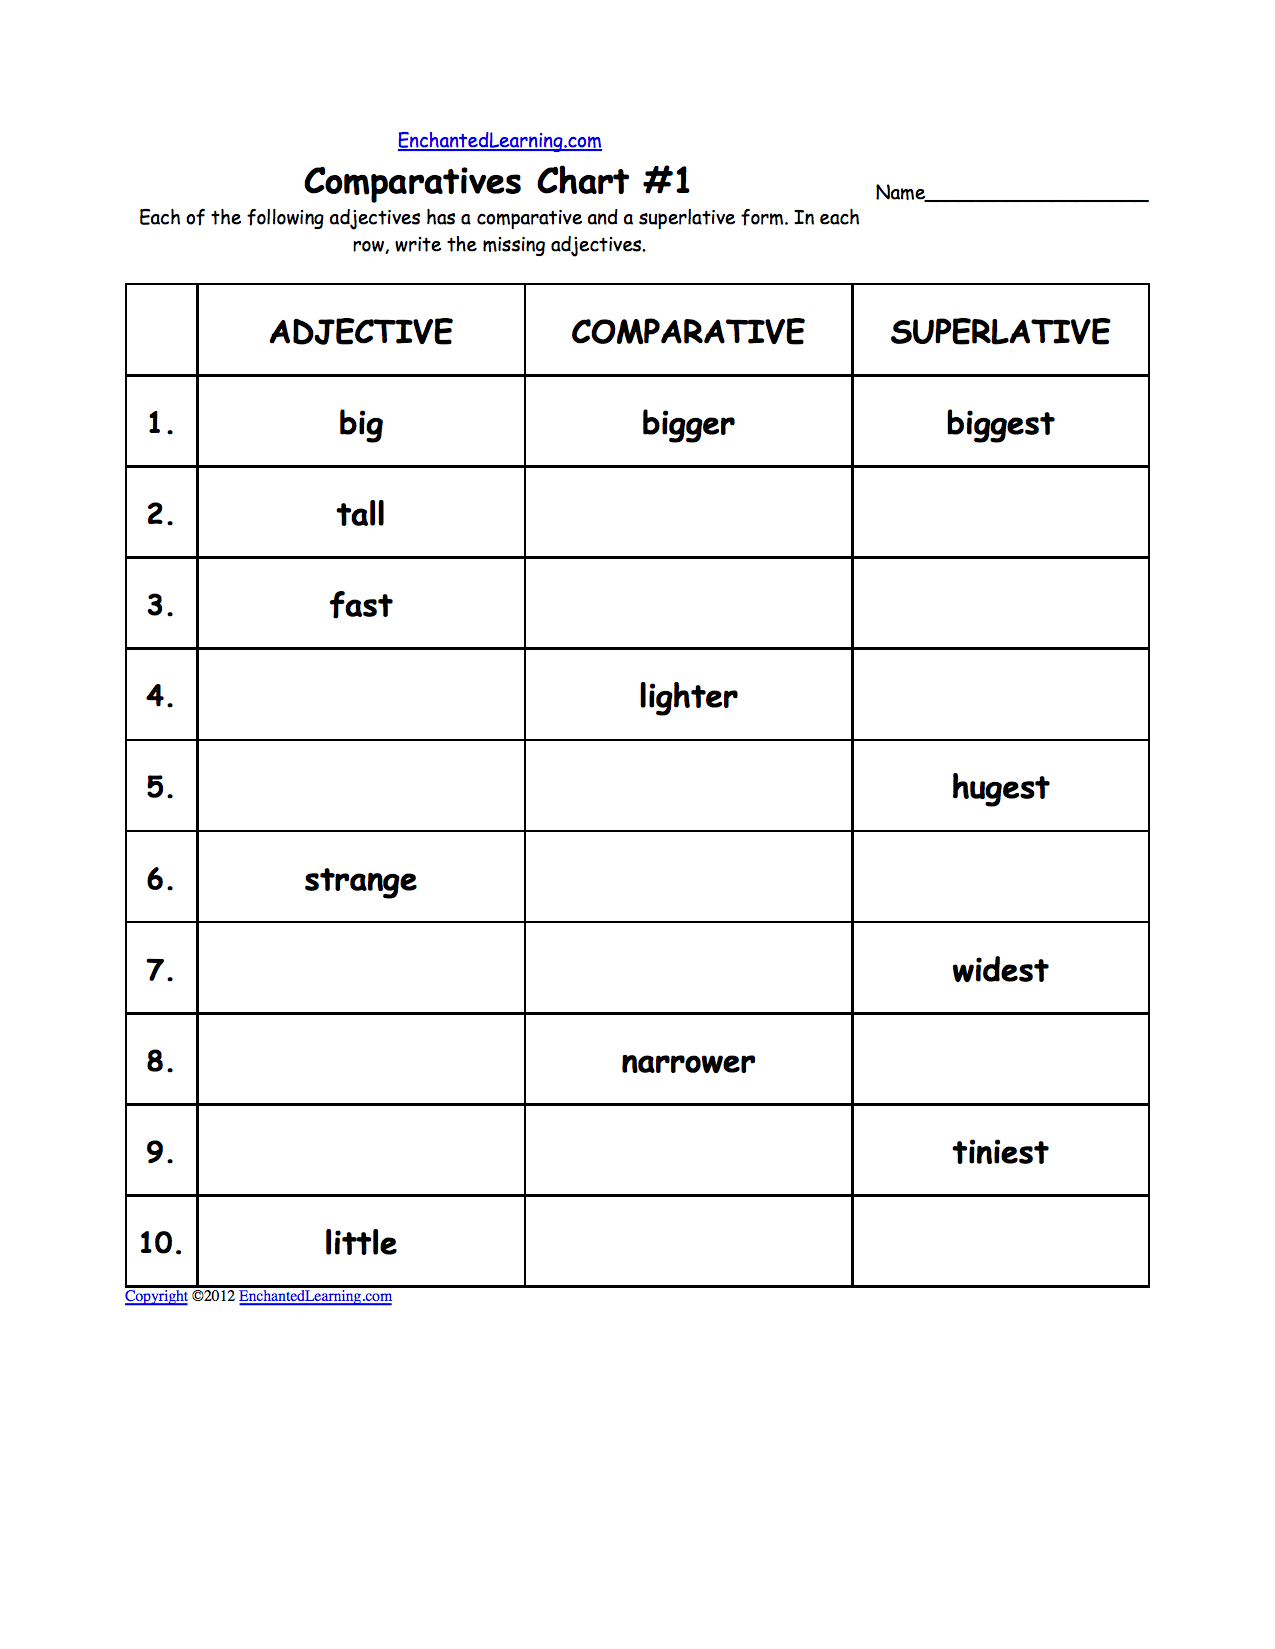 Worksheet Complete List Of Adjectives adjectives vocabulary word list enchantedlearning com